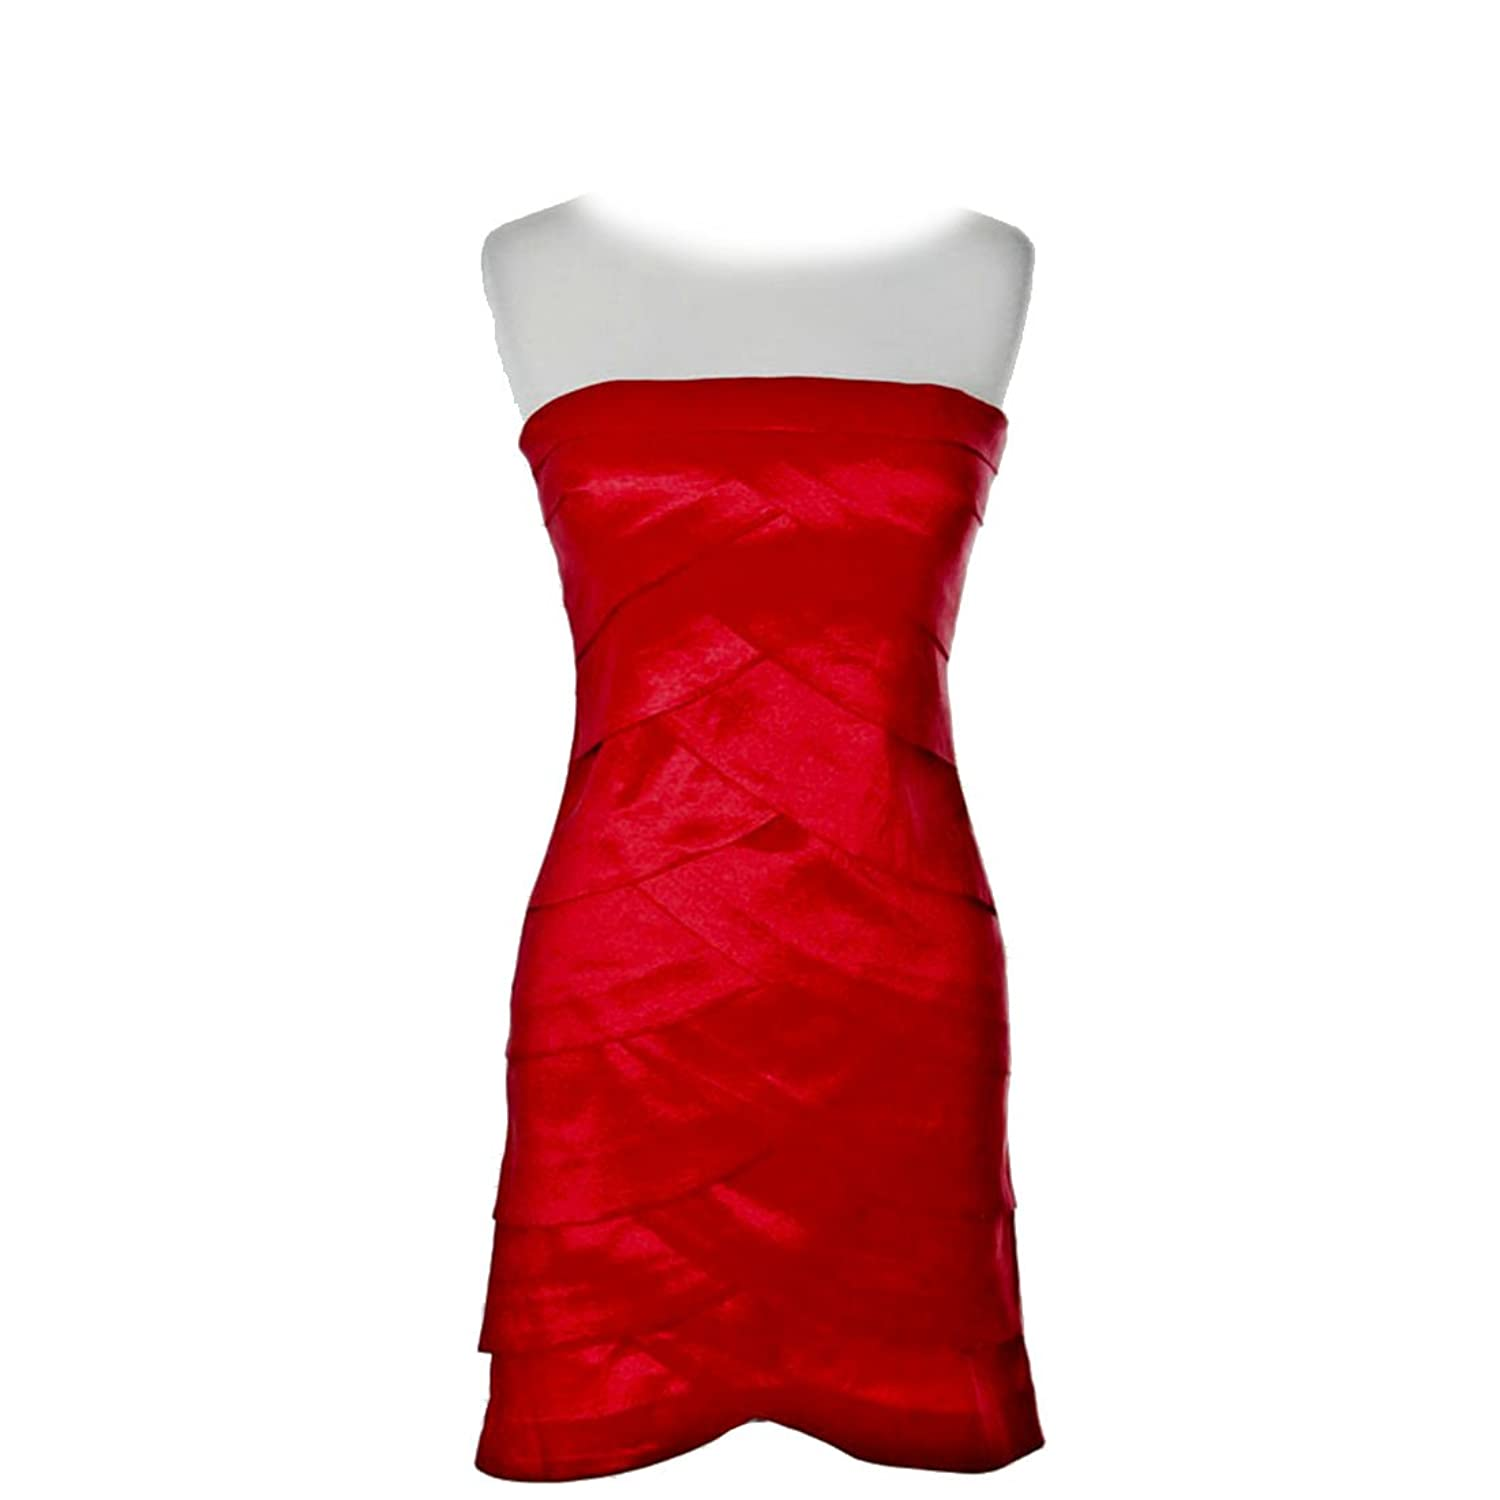 Red Layered Tube-Top, Bandage Style, Satin Dress